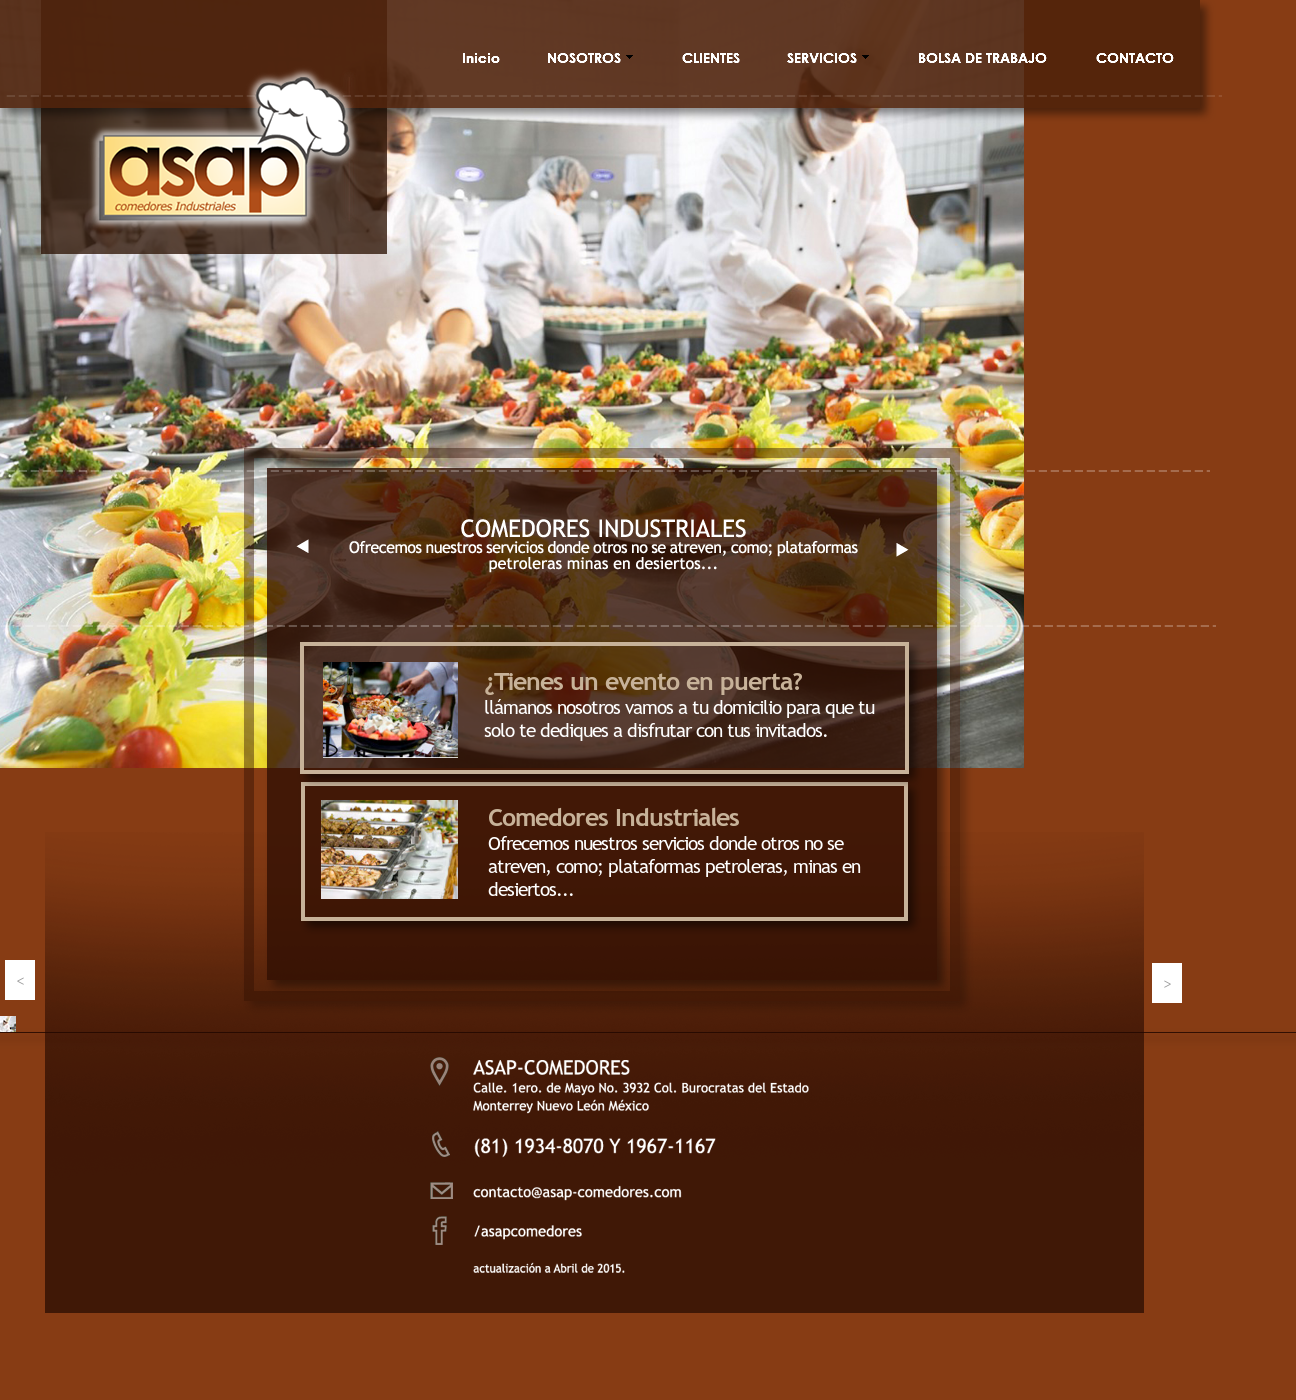 Asap Comedores Competitors, Revenue and Employees - Owler Company ...